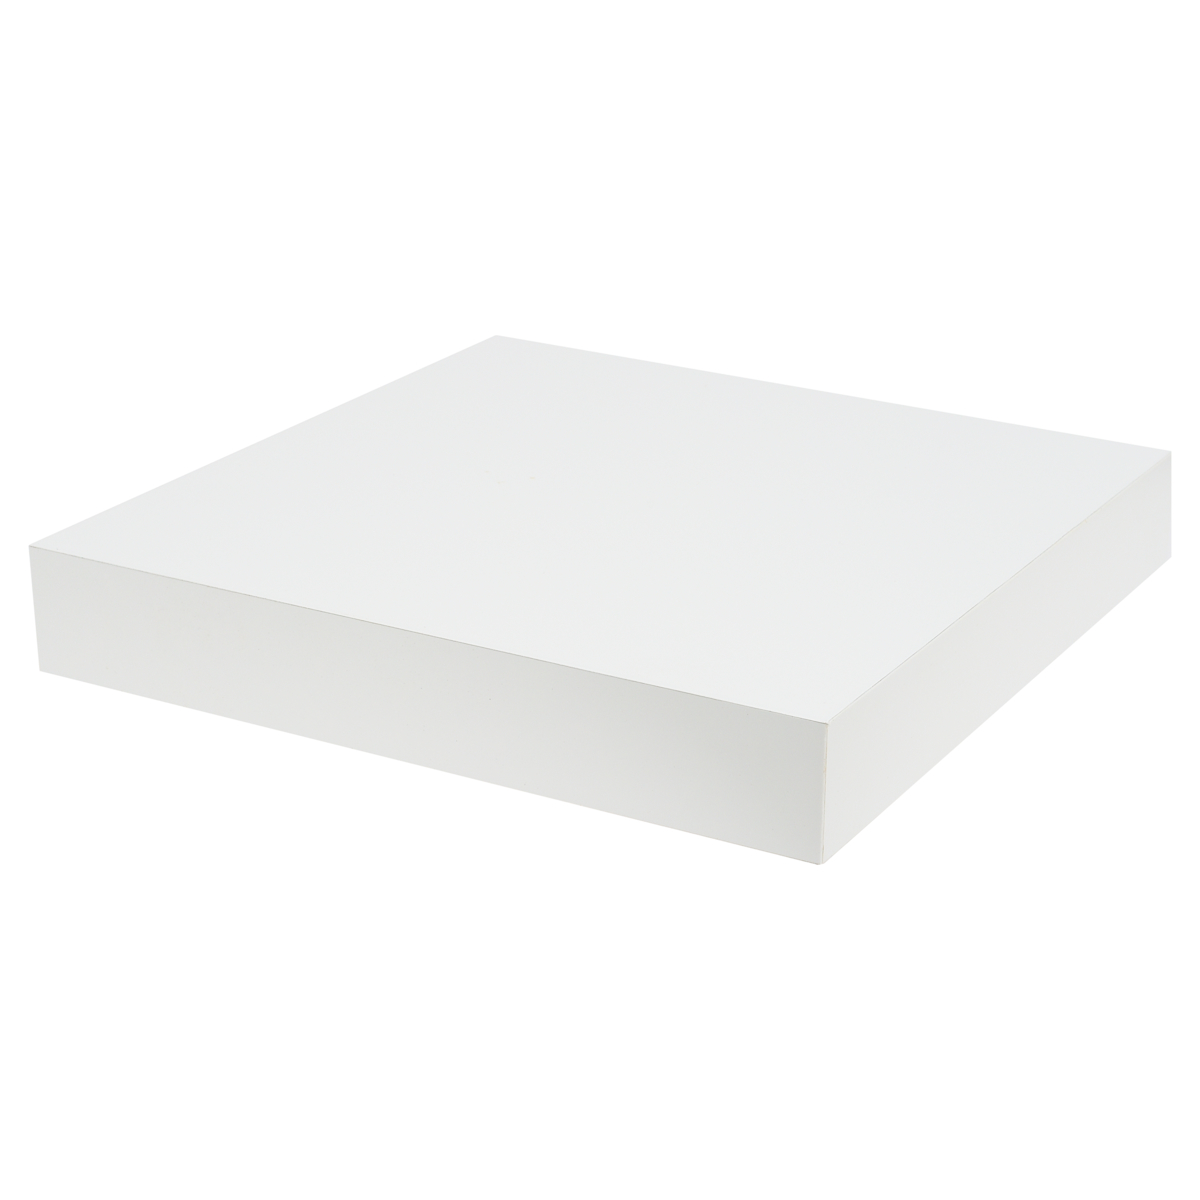 FLT SHELF XL 23.5X23.5X3.8CM WHITE